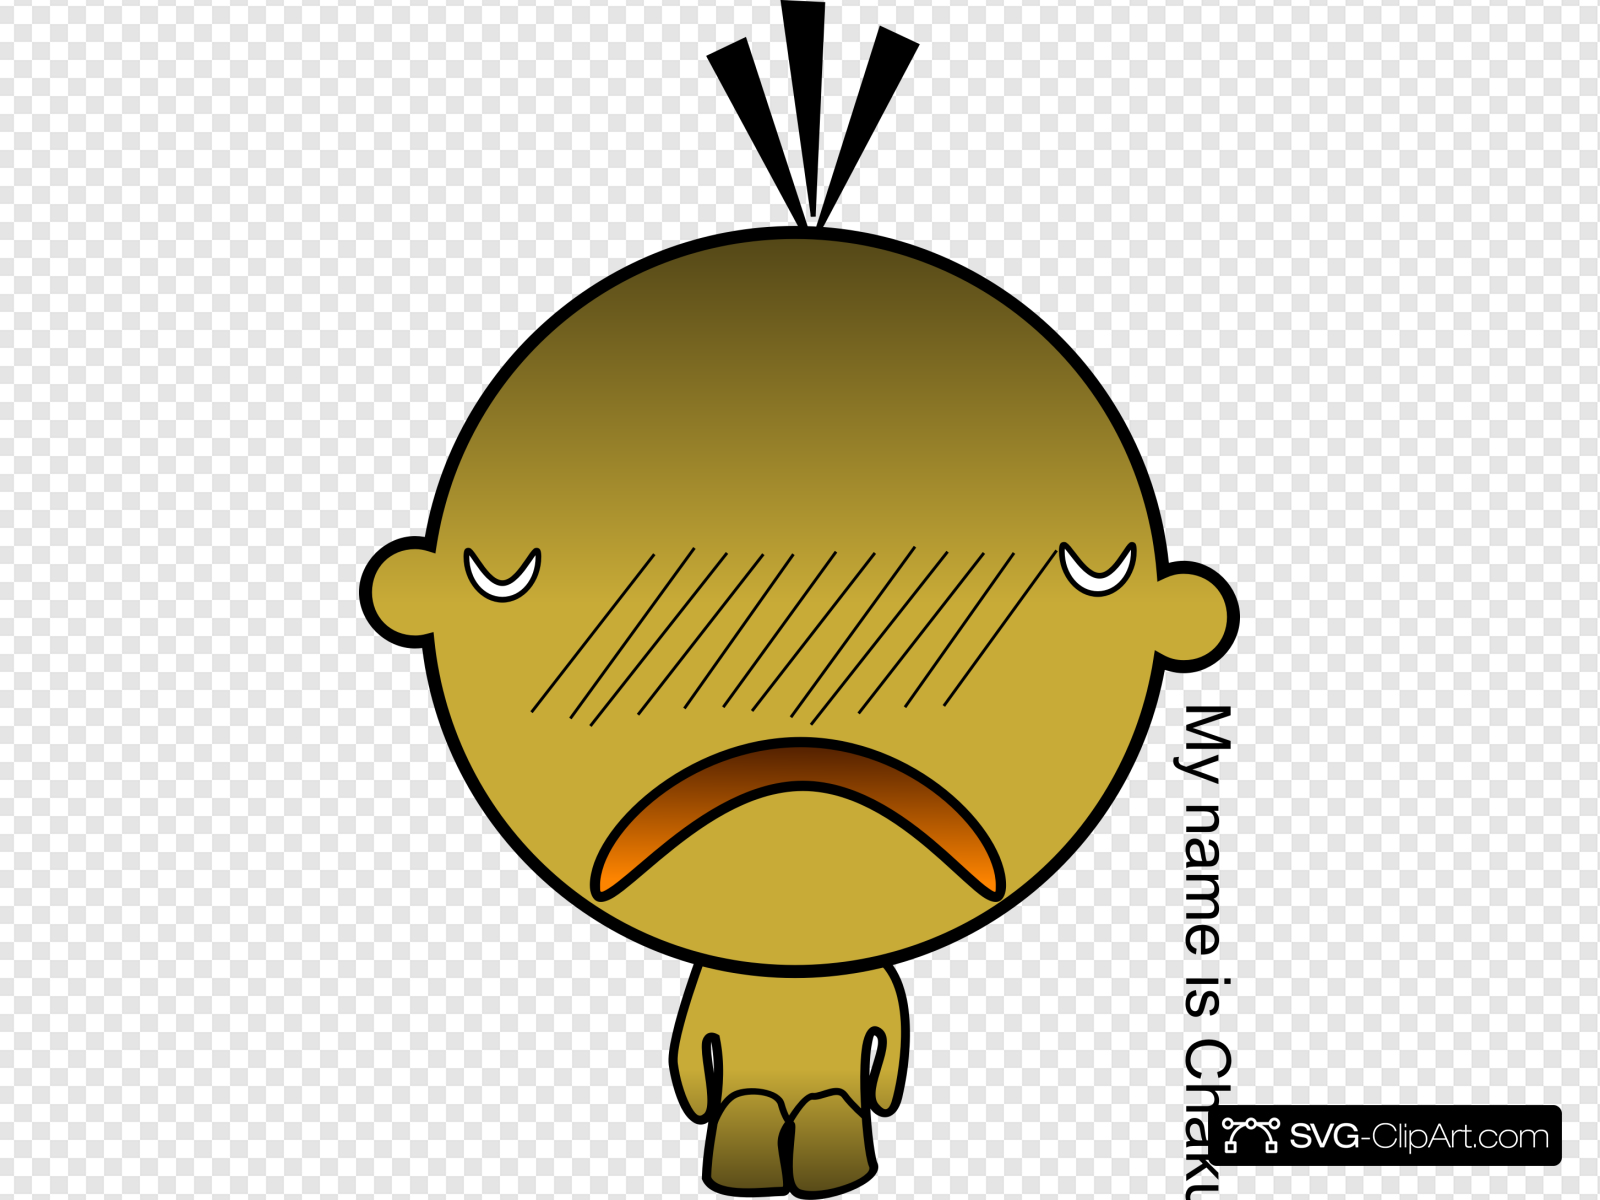 Chaku clipart png library download Chakulae Crying Clip art, Icon and SVG - SVG Clipart png library download